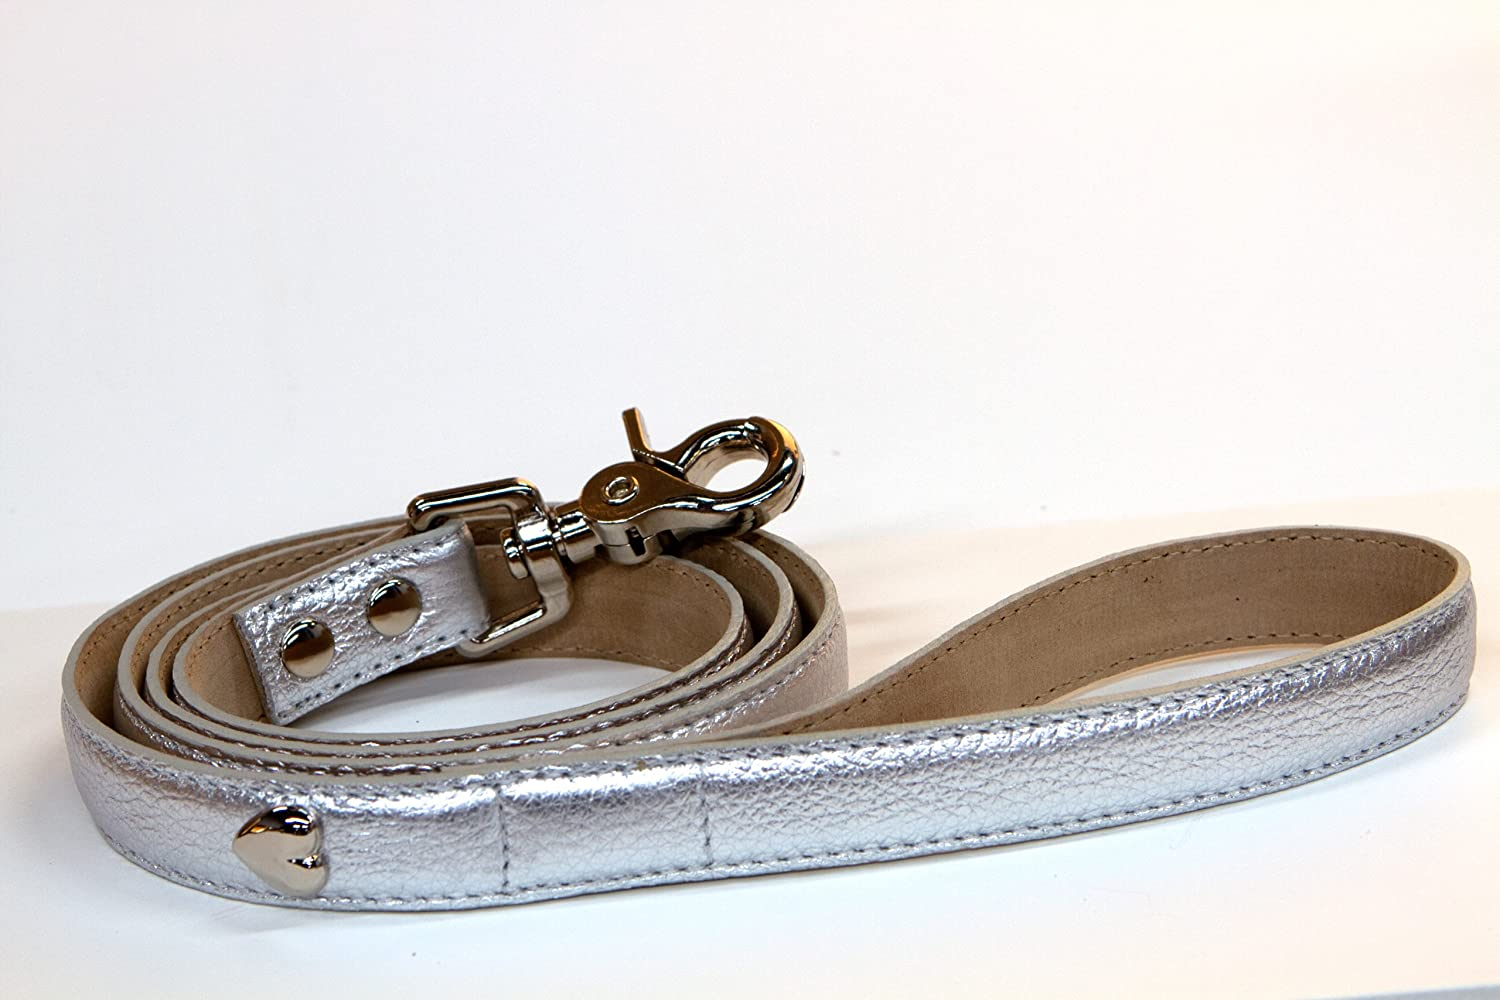 Bluemax Genuine Leather Metallic Cow Dog Leash, 3/4-Inch by 4-Feet, Silver